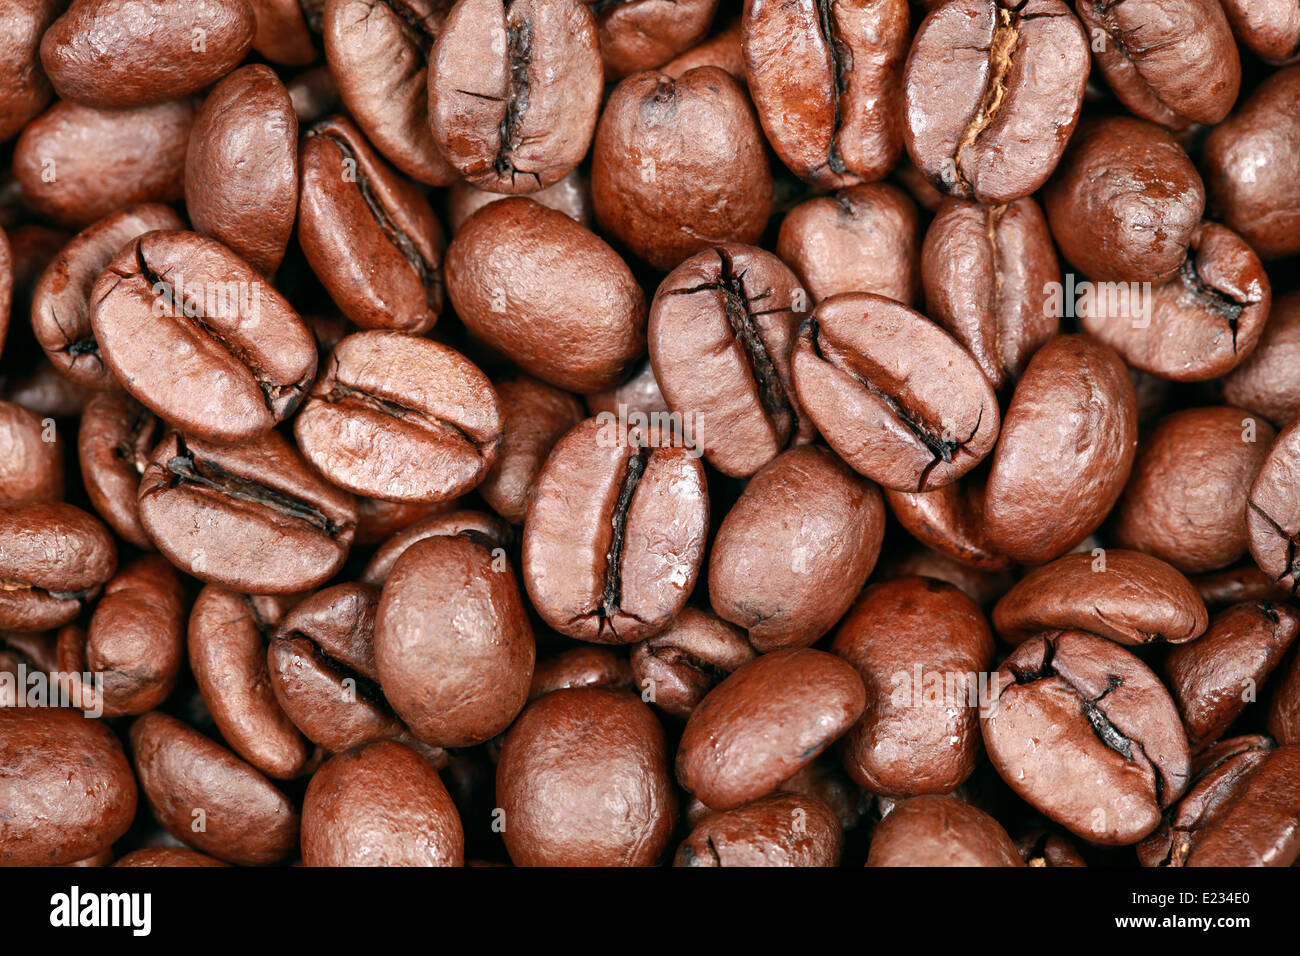 Group of coffee beans forming a background Stock Photo